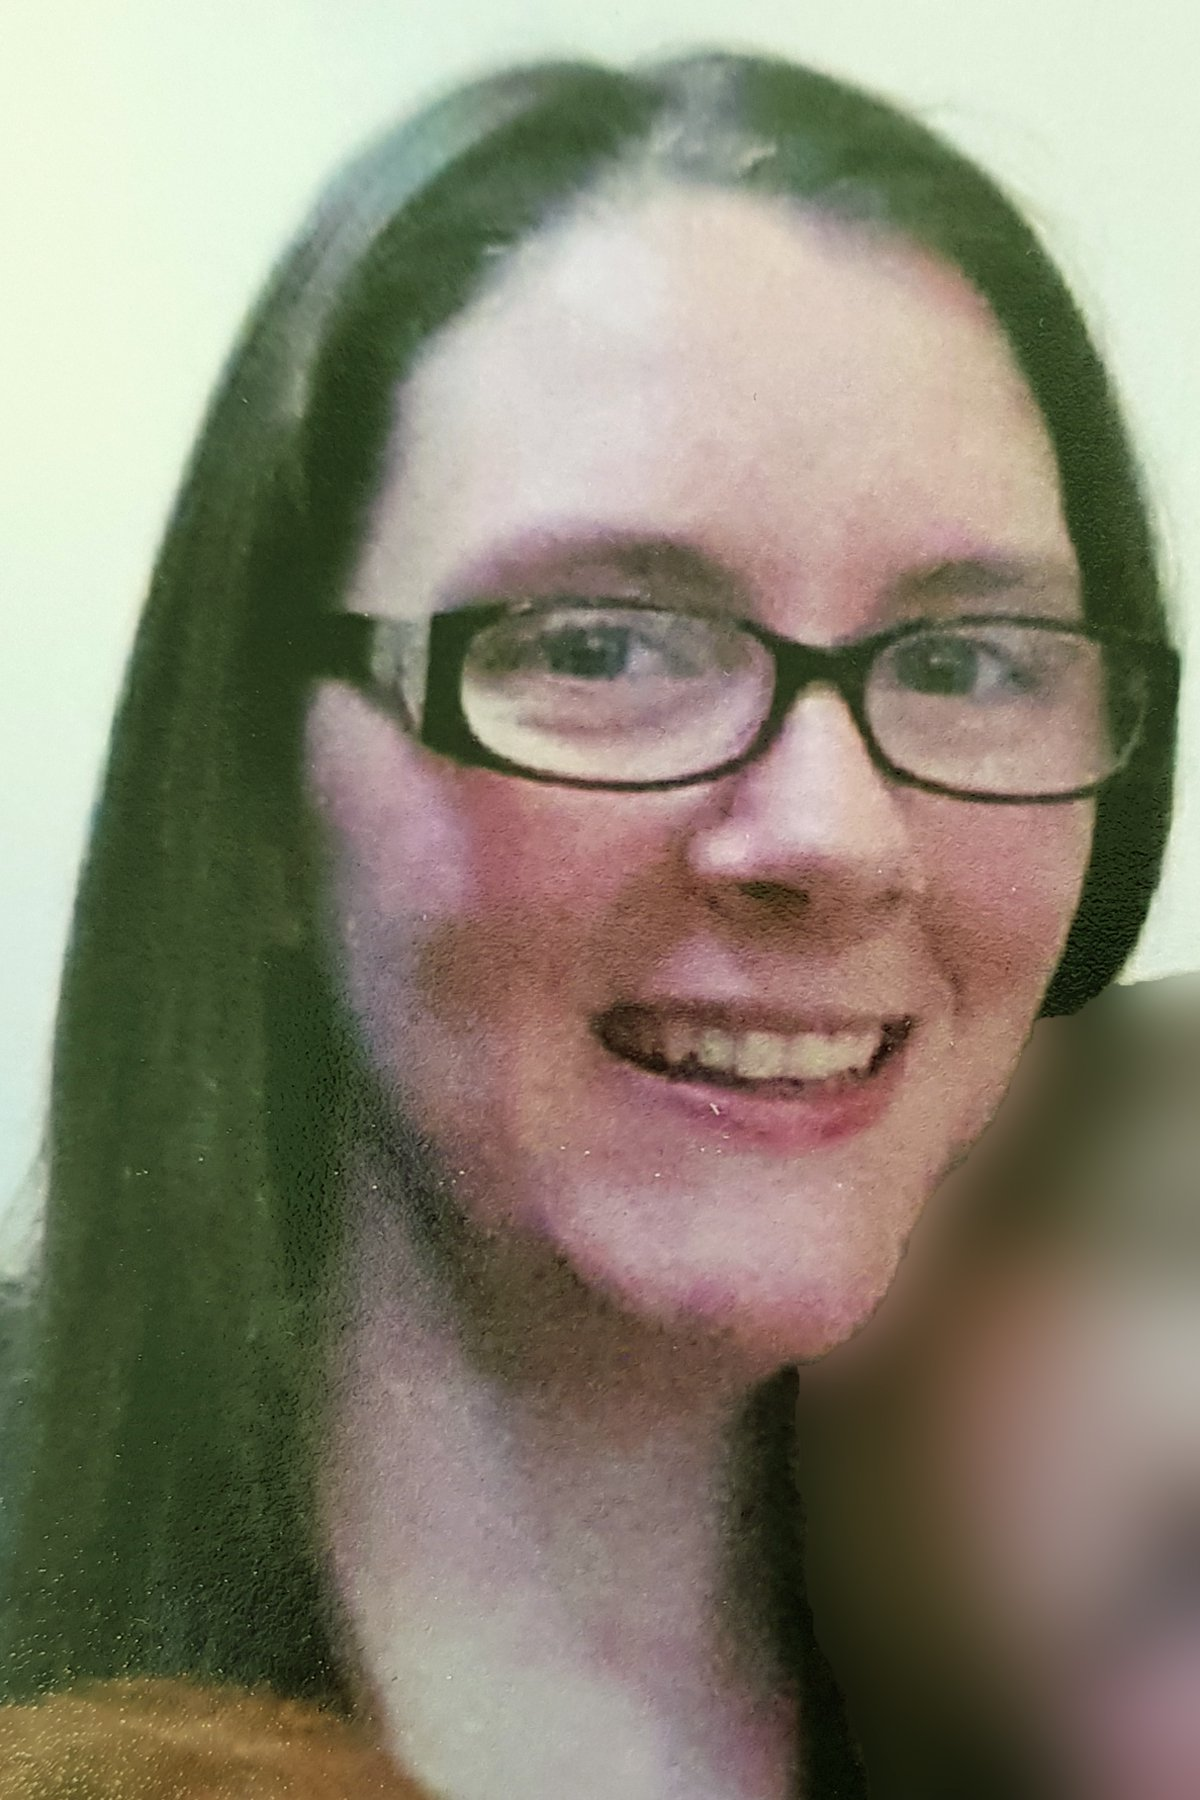 Medics recorded an astonishing 25 times that a tragic young mum was feeling suicidal - but then still allowed her to leave a secure hospital the day before she killed herself. Sarah Moore was found dead just hours after being discharged from the Radbourne Unit in Derby in February this year. Caption: Sarah Moore